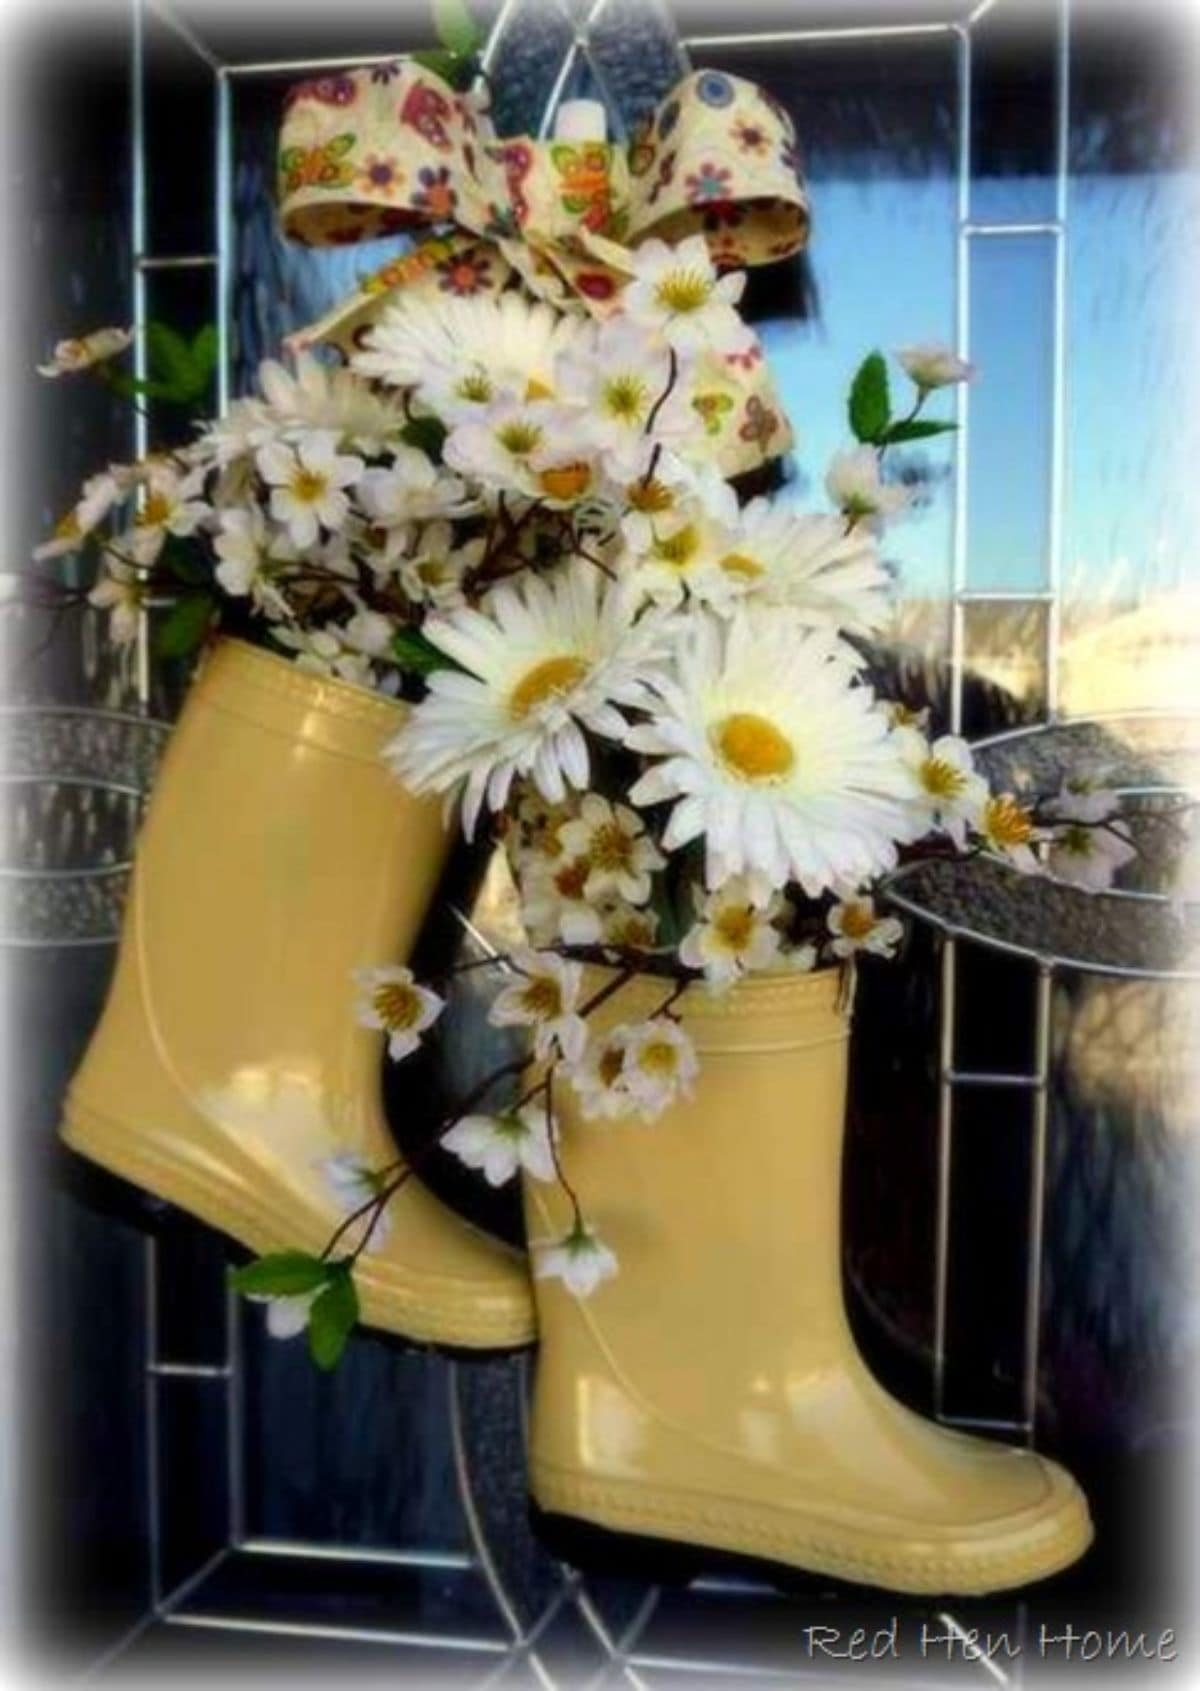 Hanging from a front door are two yellow wellies filled with white and yellow flowers